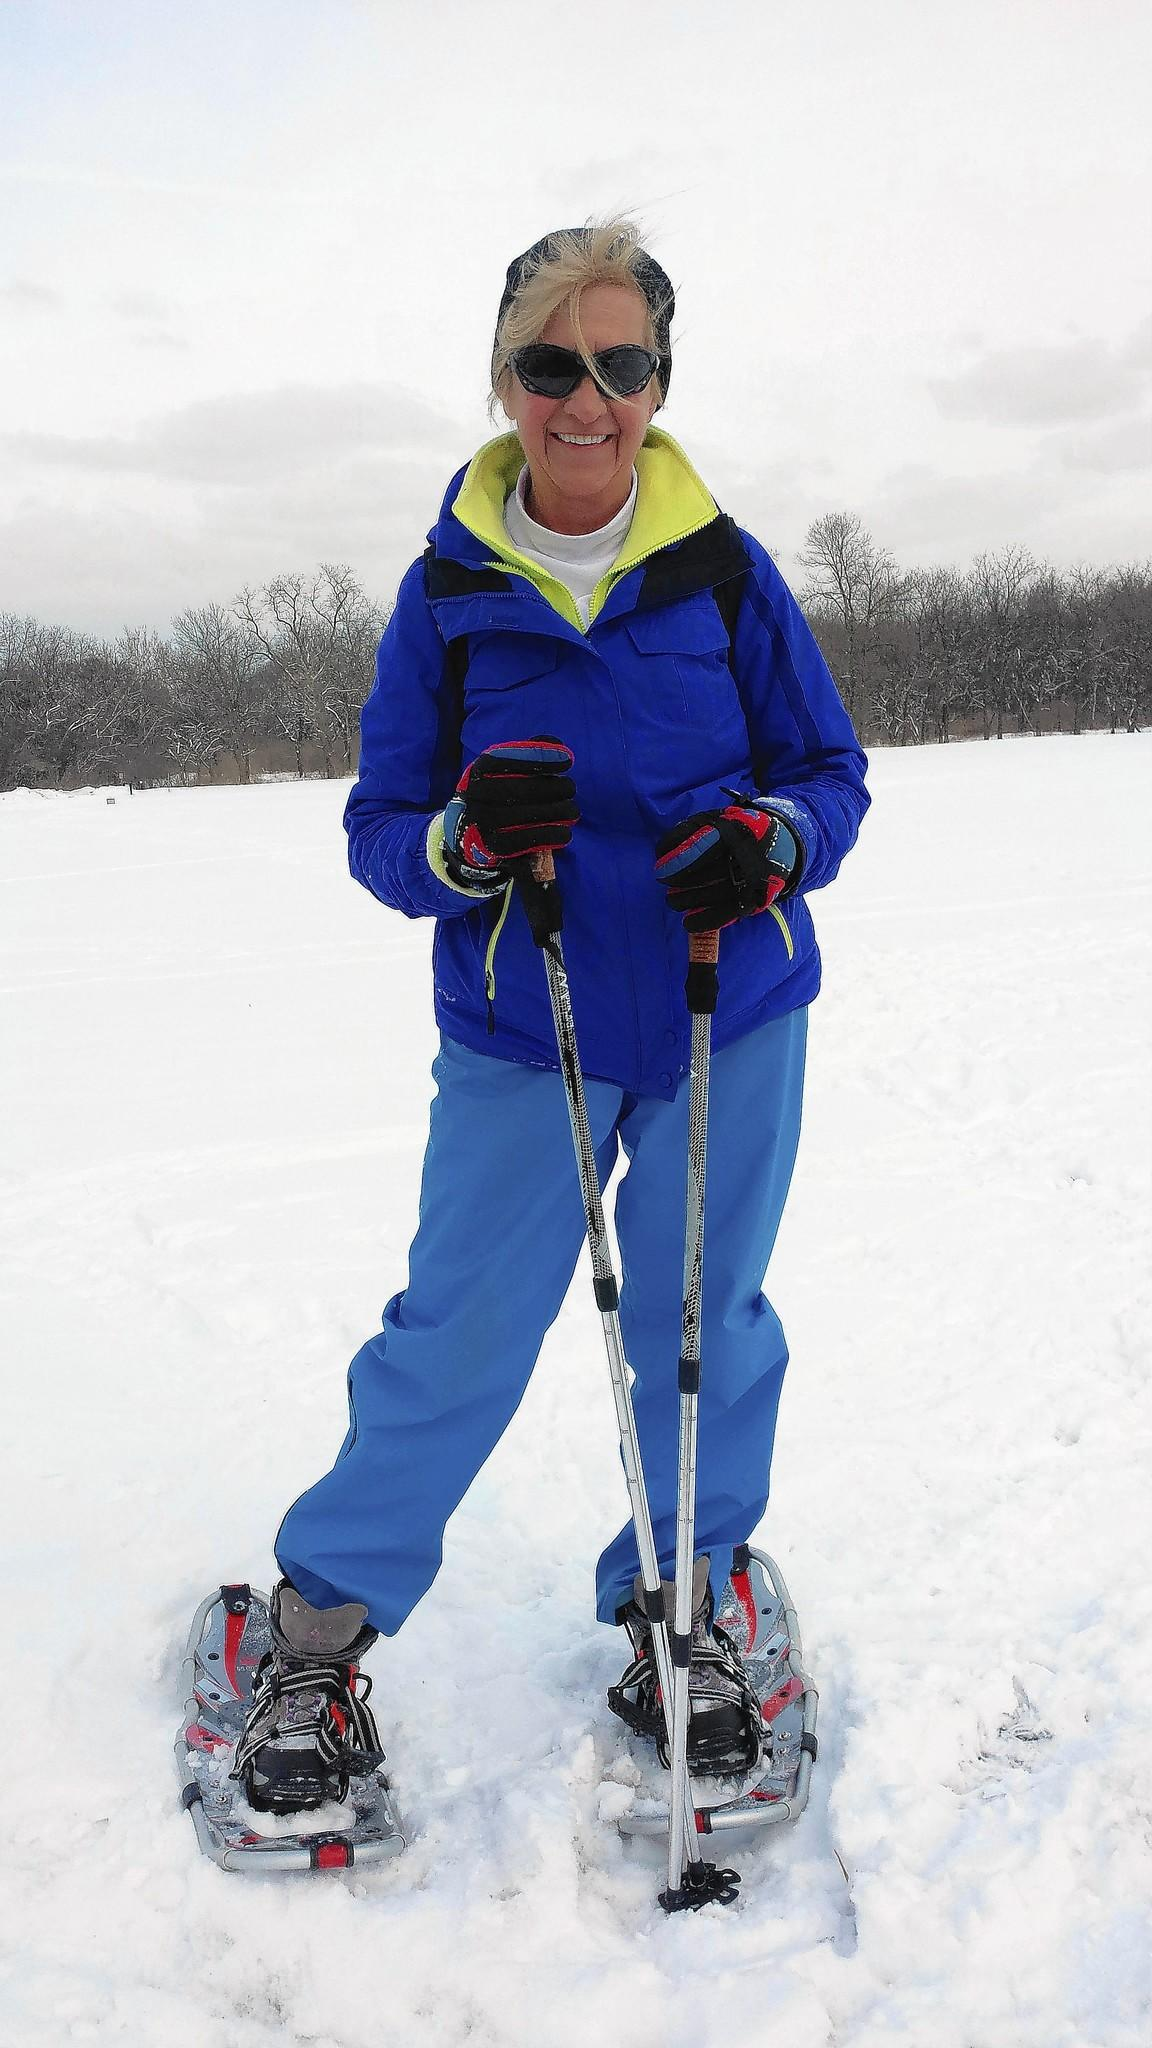 Bolingbrook resident Nancy Klimah is planning on scaling California's Mt. Shasta this week to raise money for the fight against breast cancer. She is seen here training for the climb this past winter.